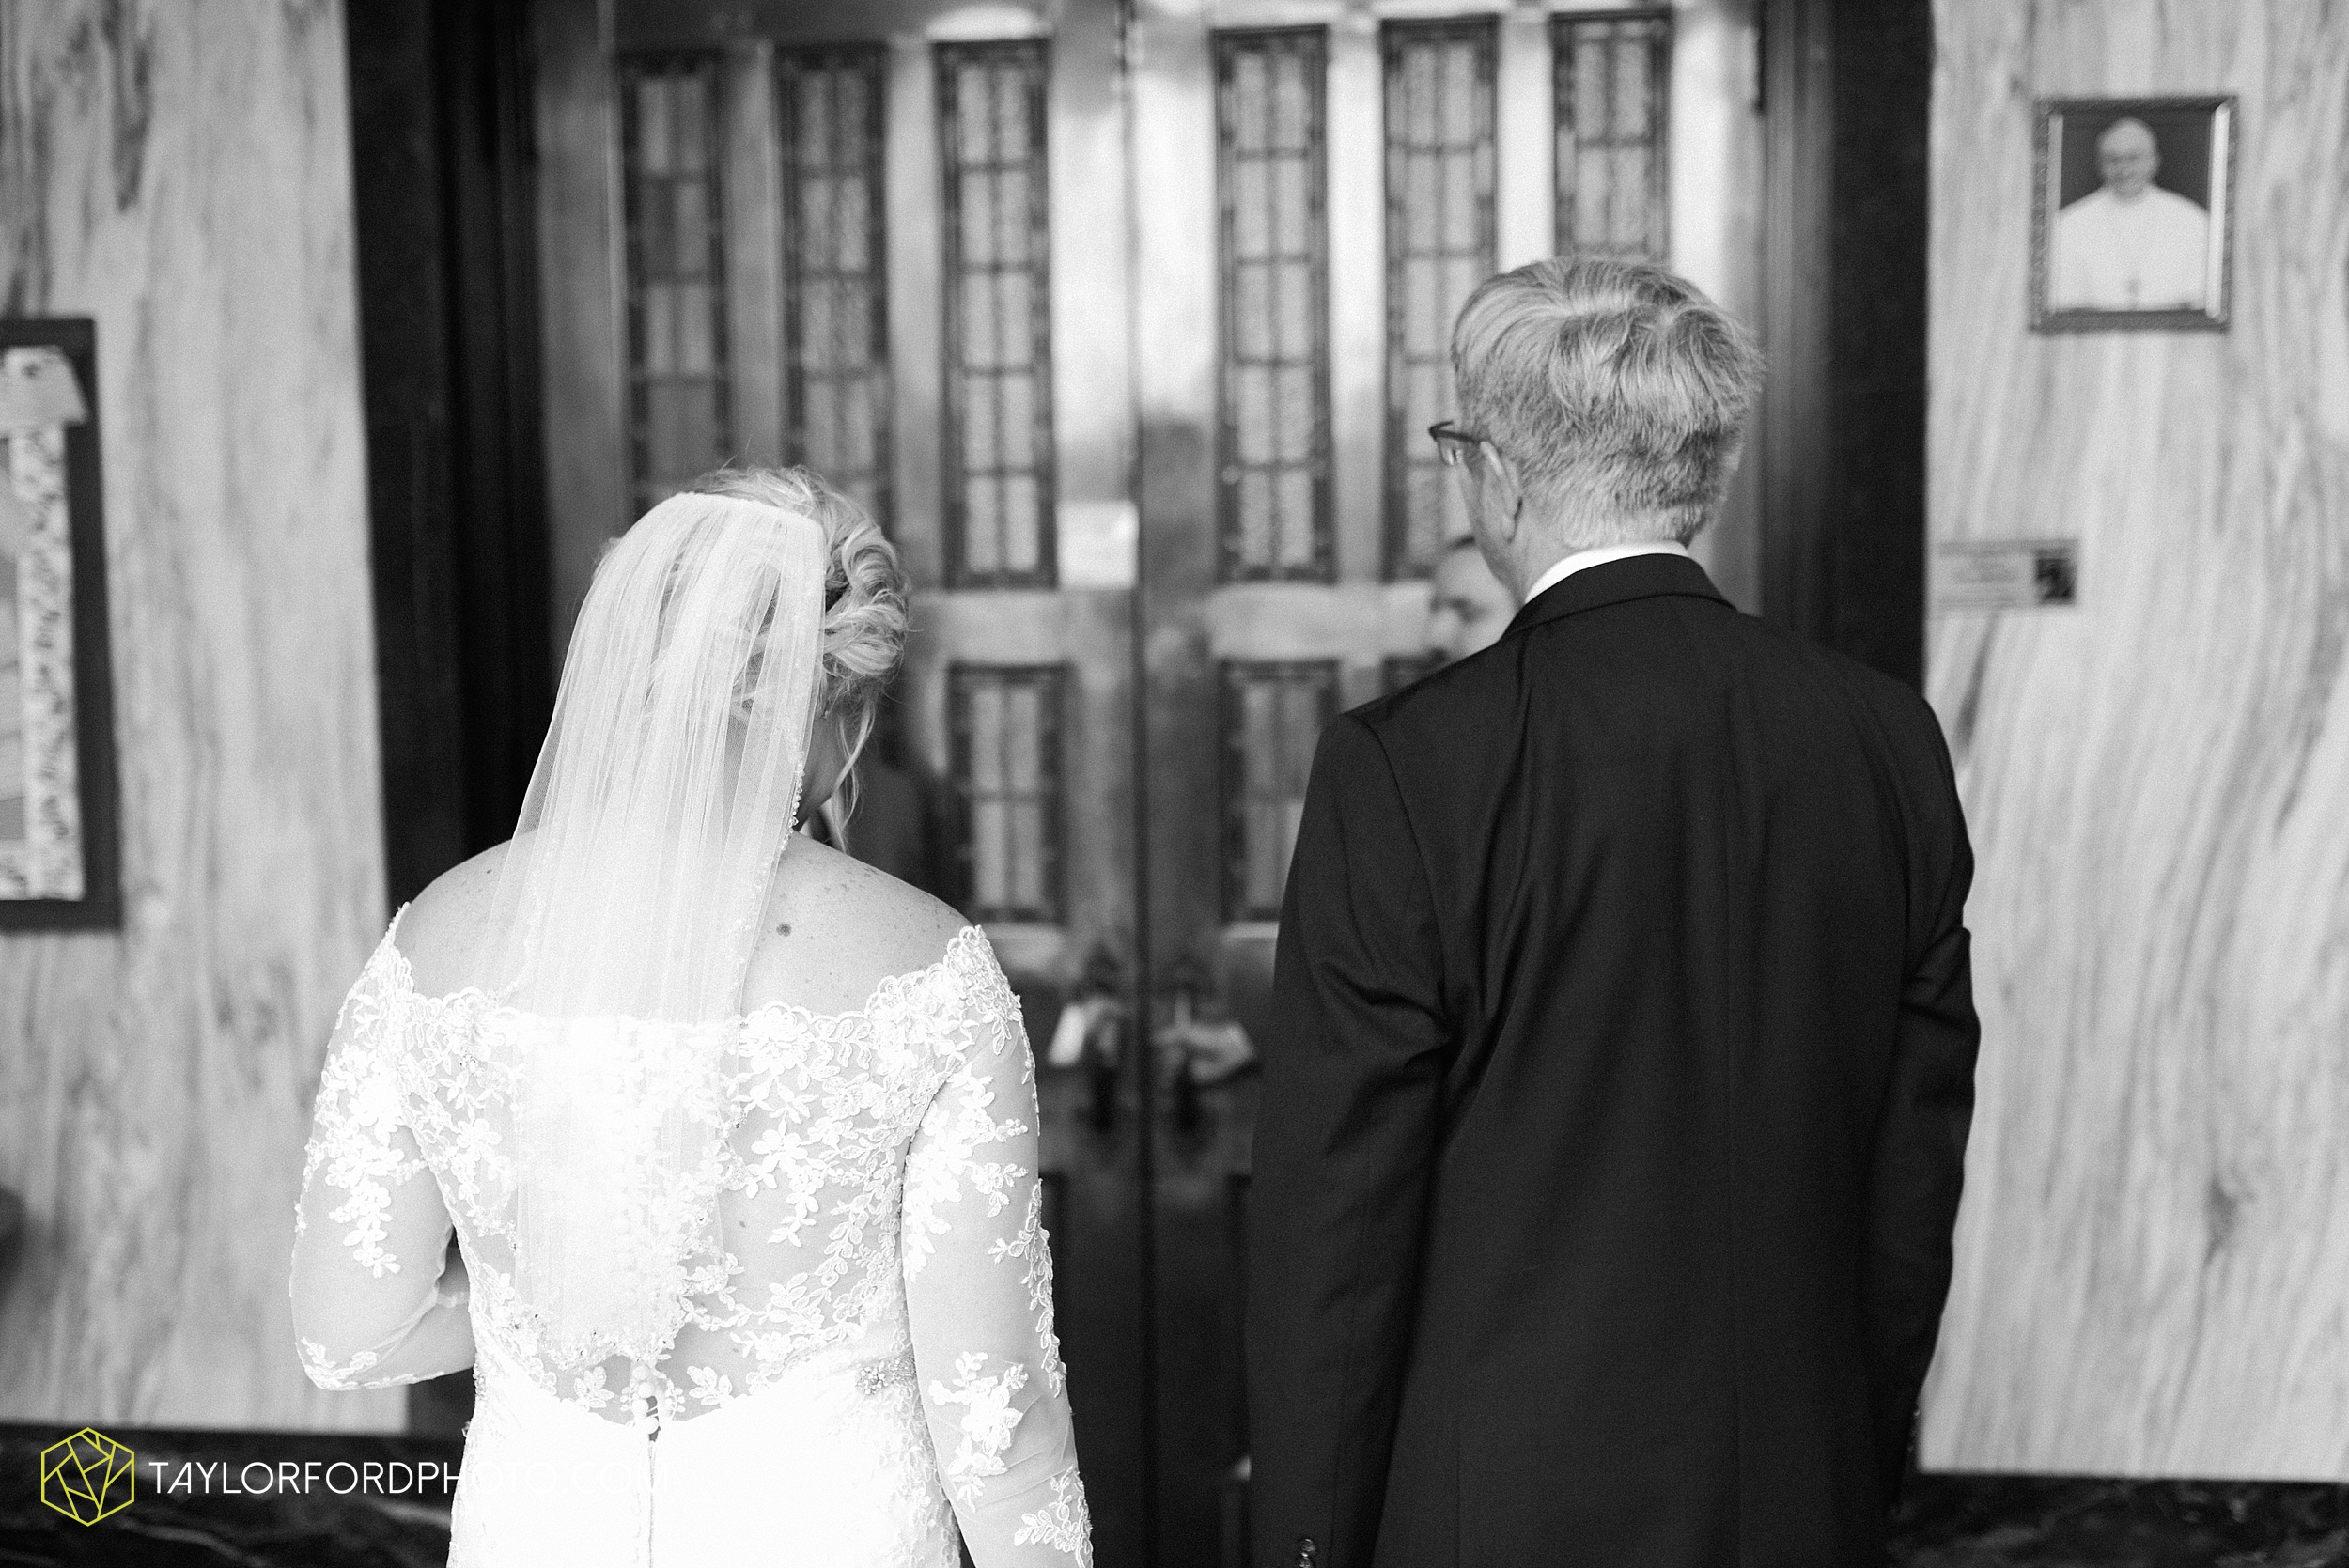 gayle-rayman-mike-steele-ottoville-ohio-wedding-immaculate-conception-parish-center-wedding-sycamore-lake-winery-wannamachers-photographer-taylor-ford-photography_0394.jpg